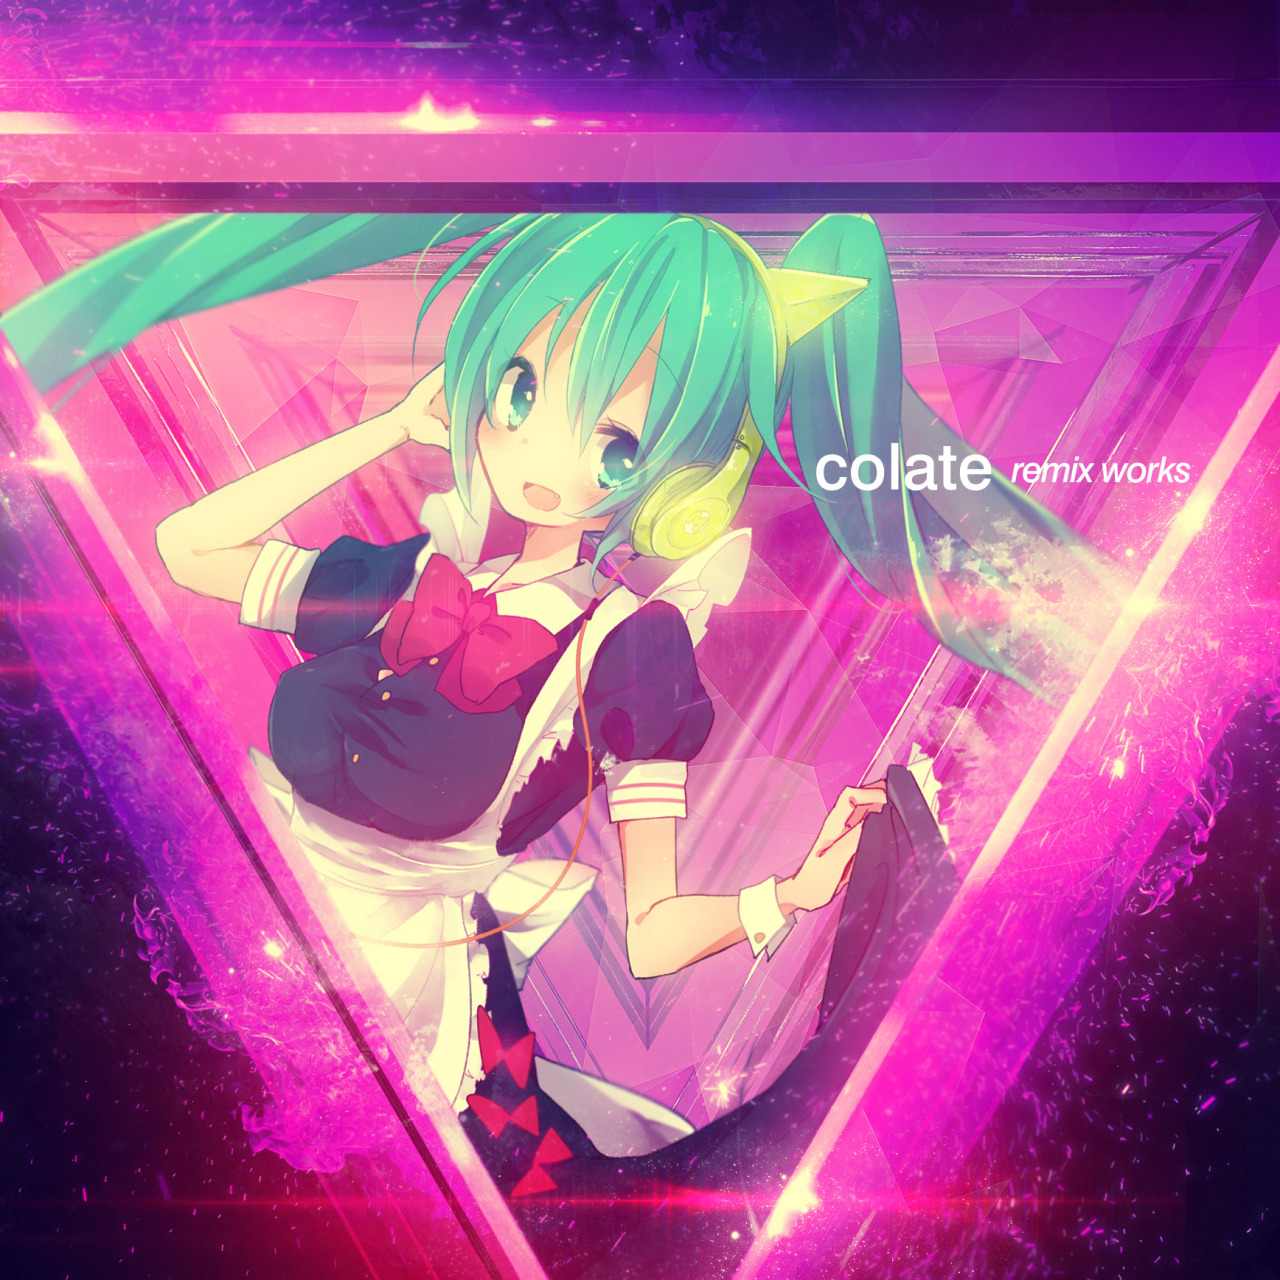 colate remix works